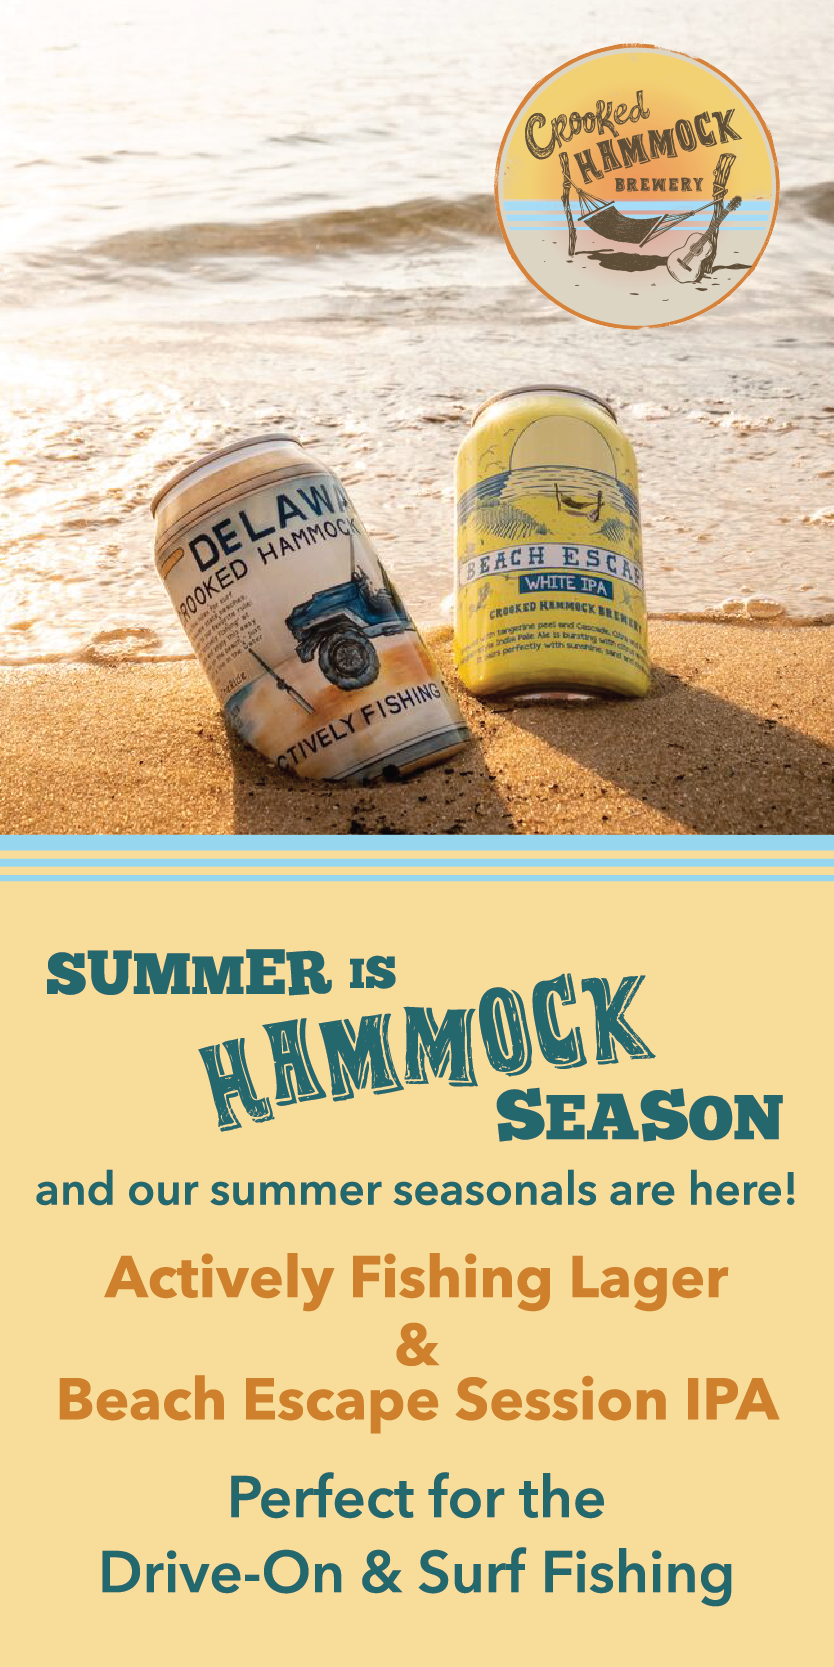 Crooked Hammock Brewery side ad